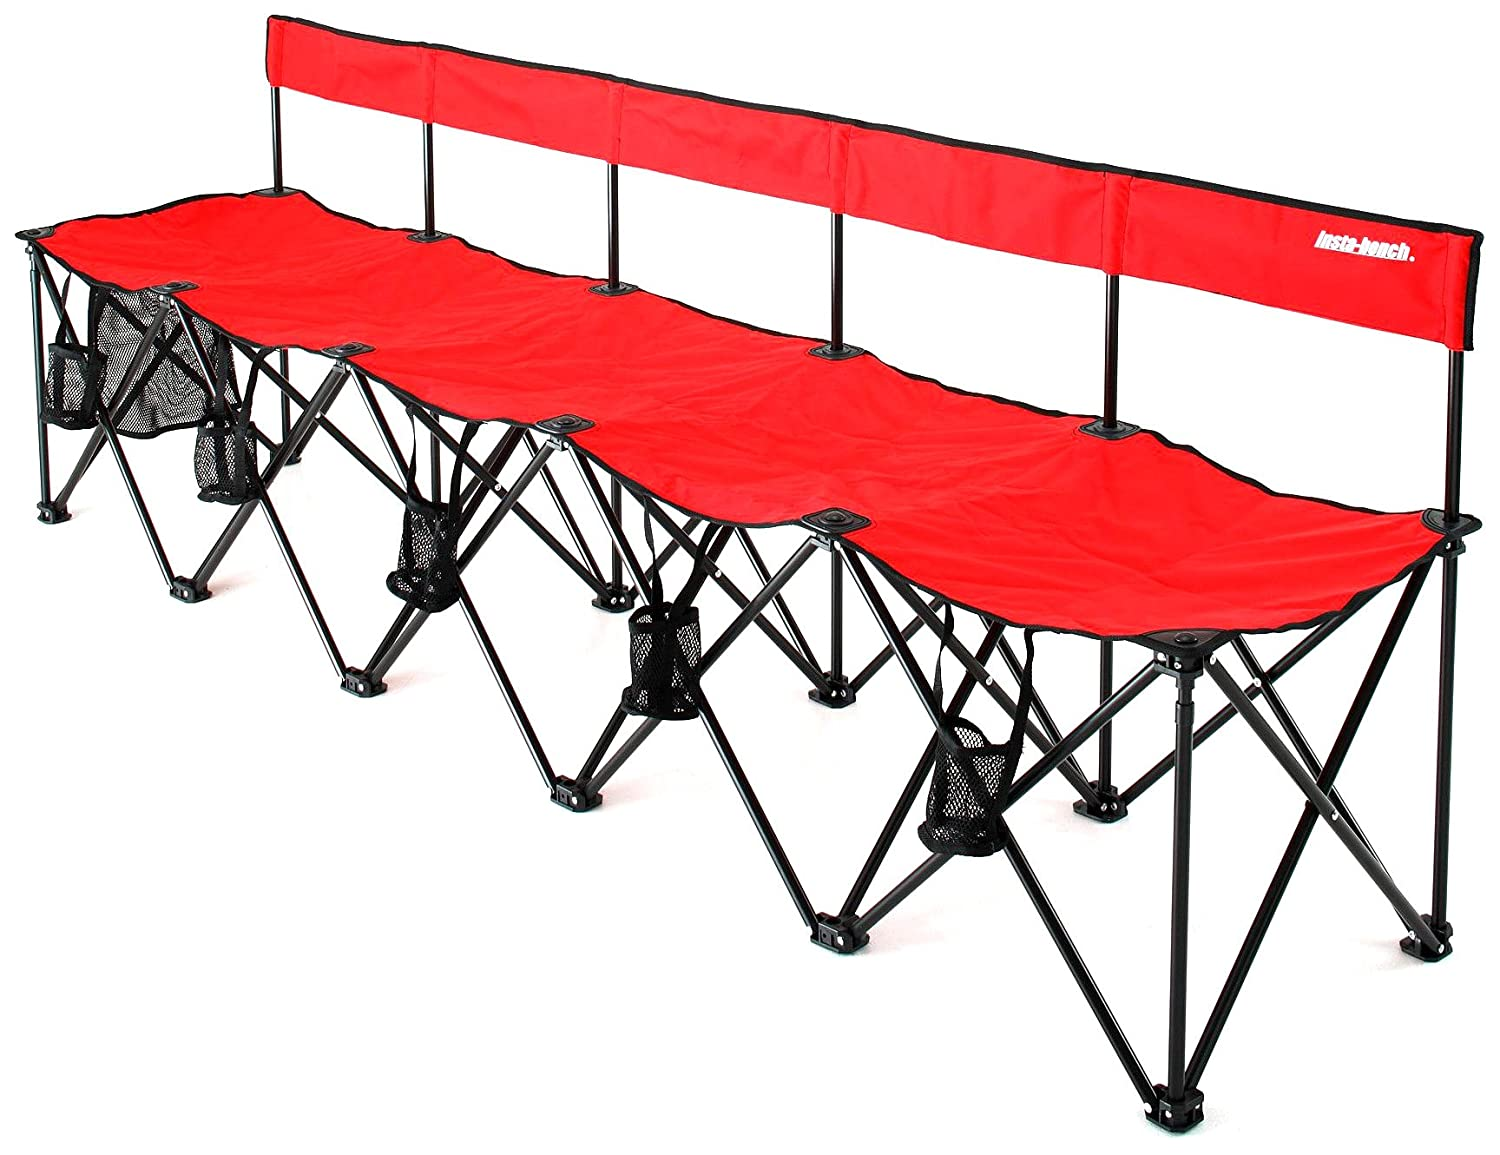 Best Collapsible Portable Folding Soccer Team Bench 6 Seat